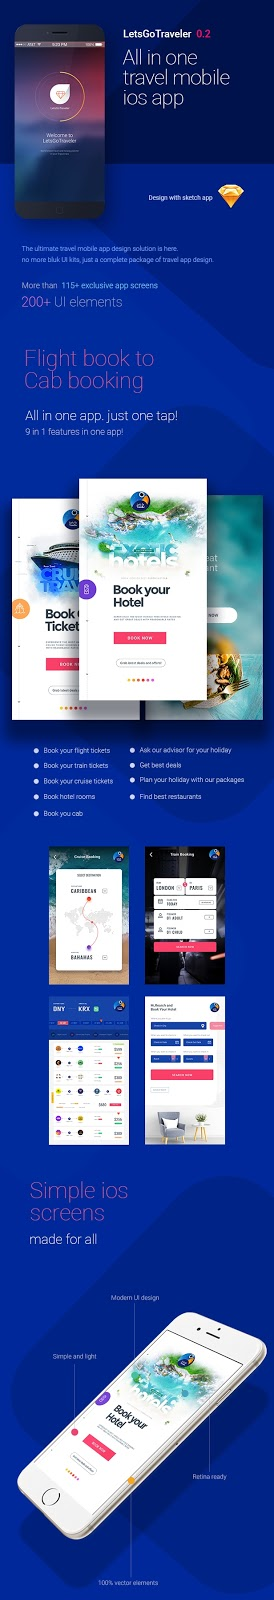 All in One Holiday Sketch UI kit